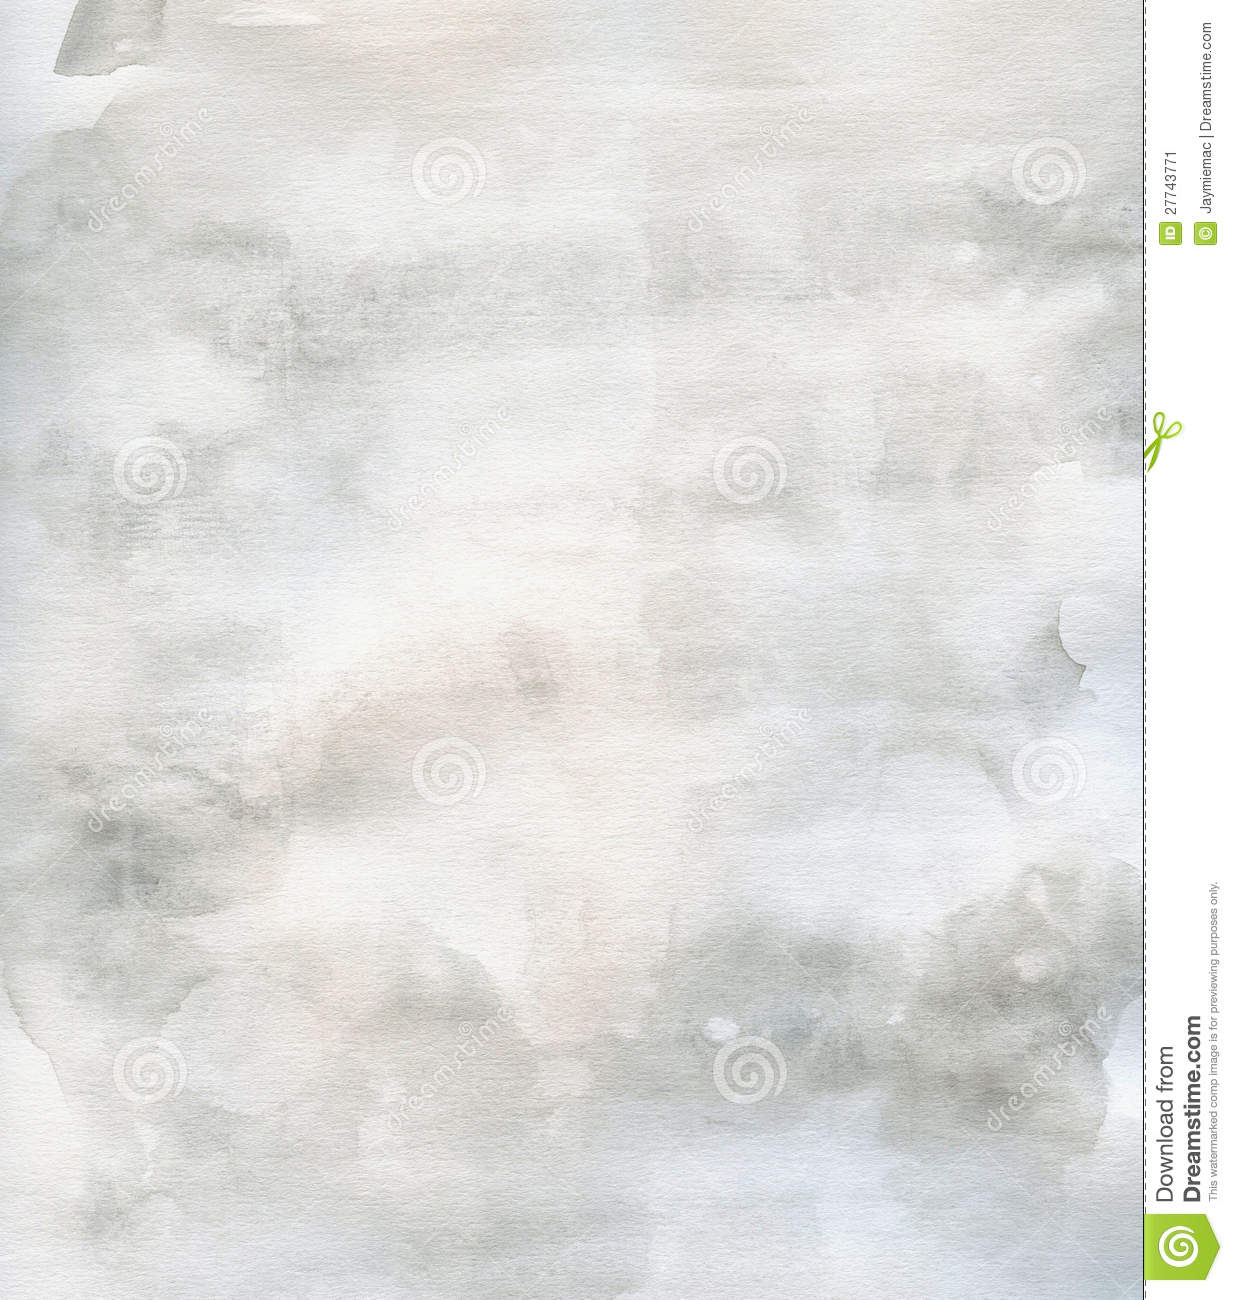 Subtle Grunge Texture Watercolor Background Grey Stock